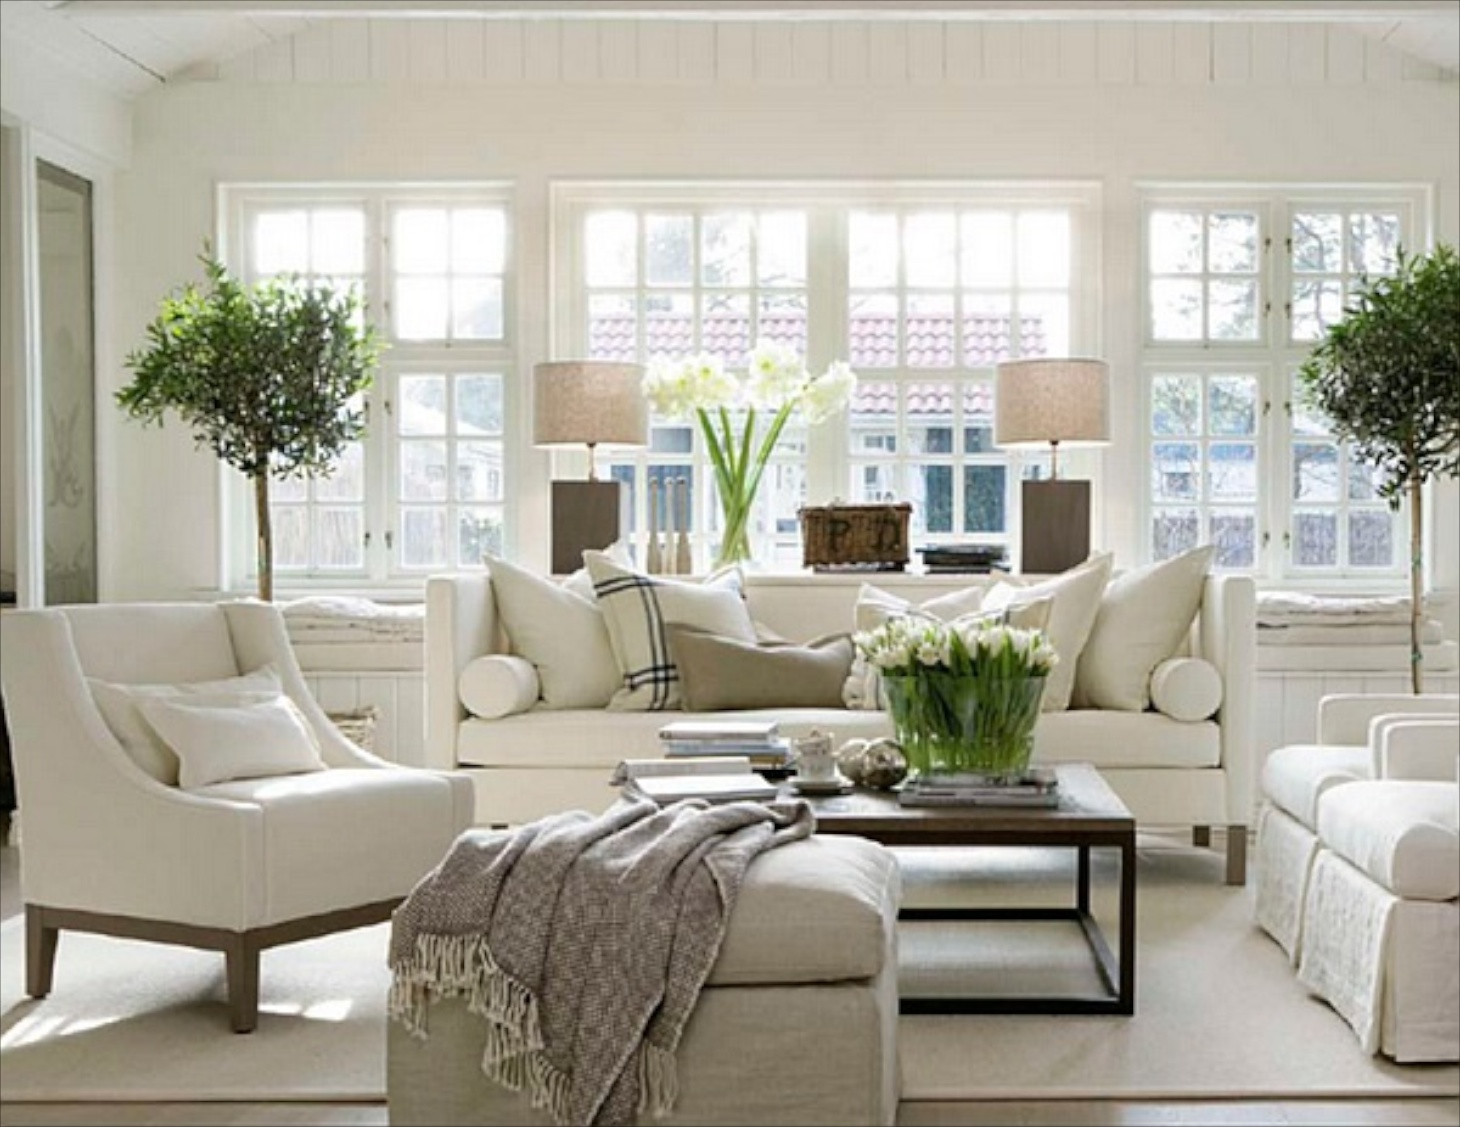 Cozy Living Room: 22_Cozy-Traditional-Living-Room-Indoor-Plant-Modern-White